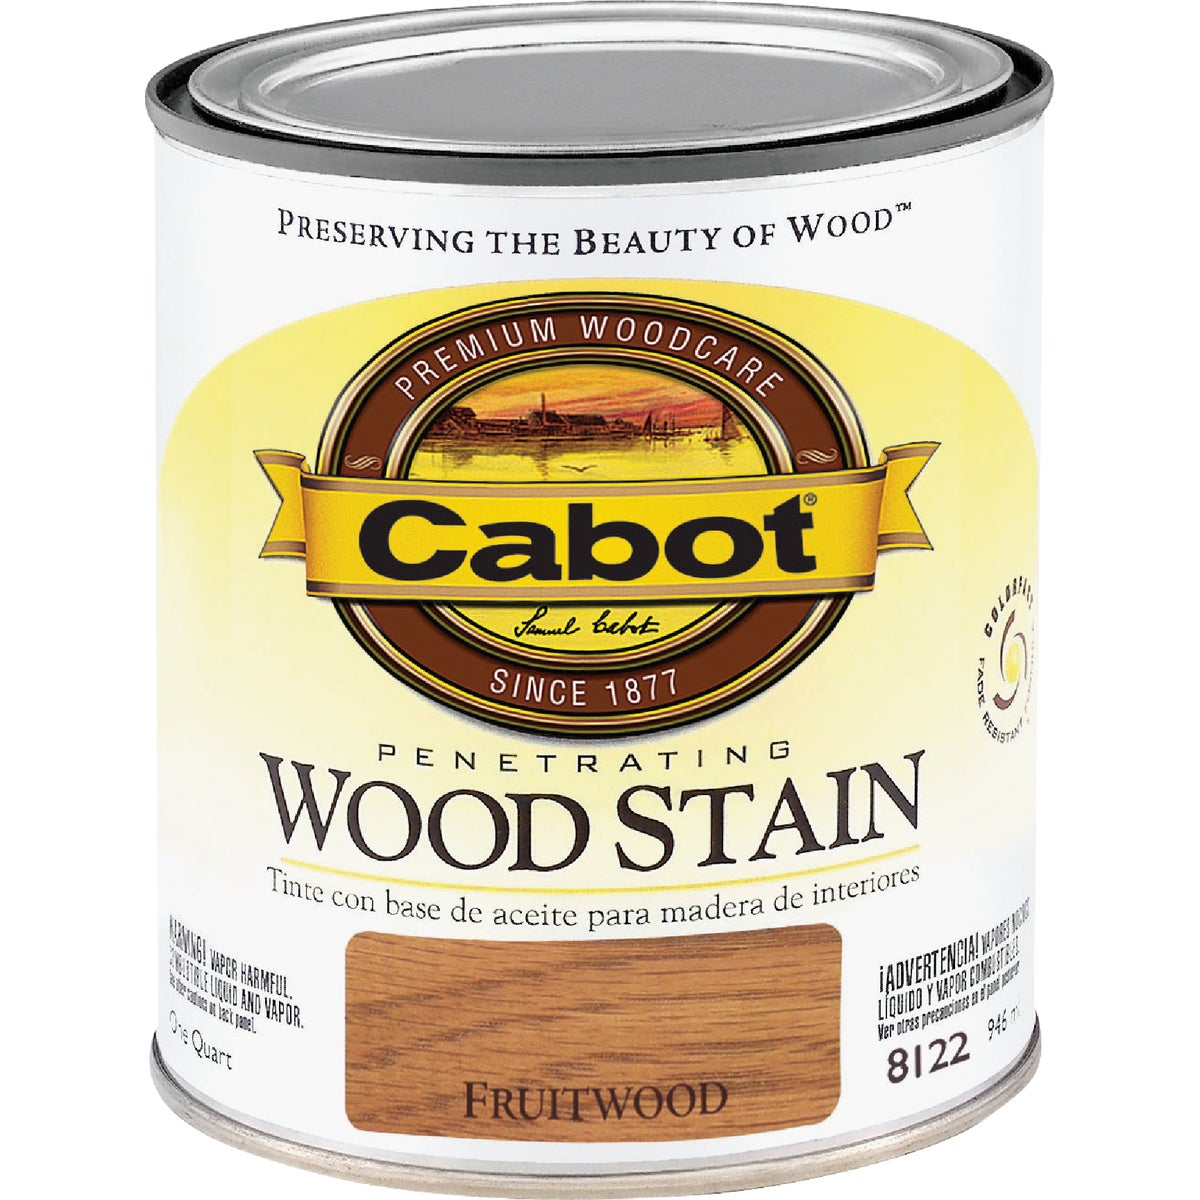 INT FRUITWOOD WOOD STAIN - 144.0008122.005 by Valspar Corp